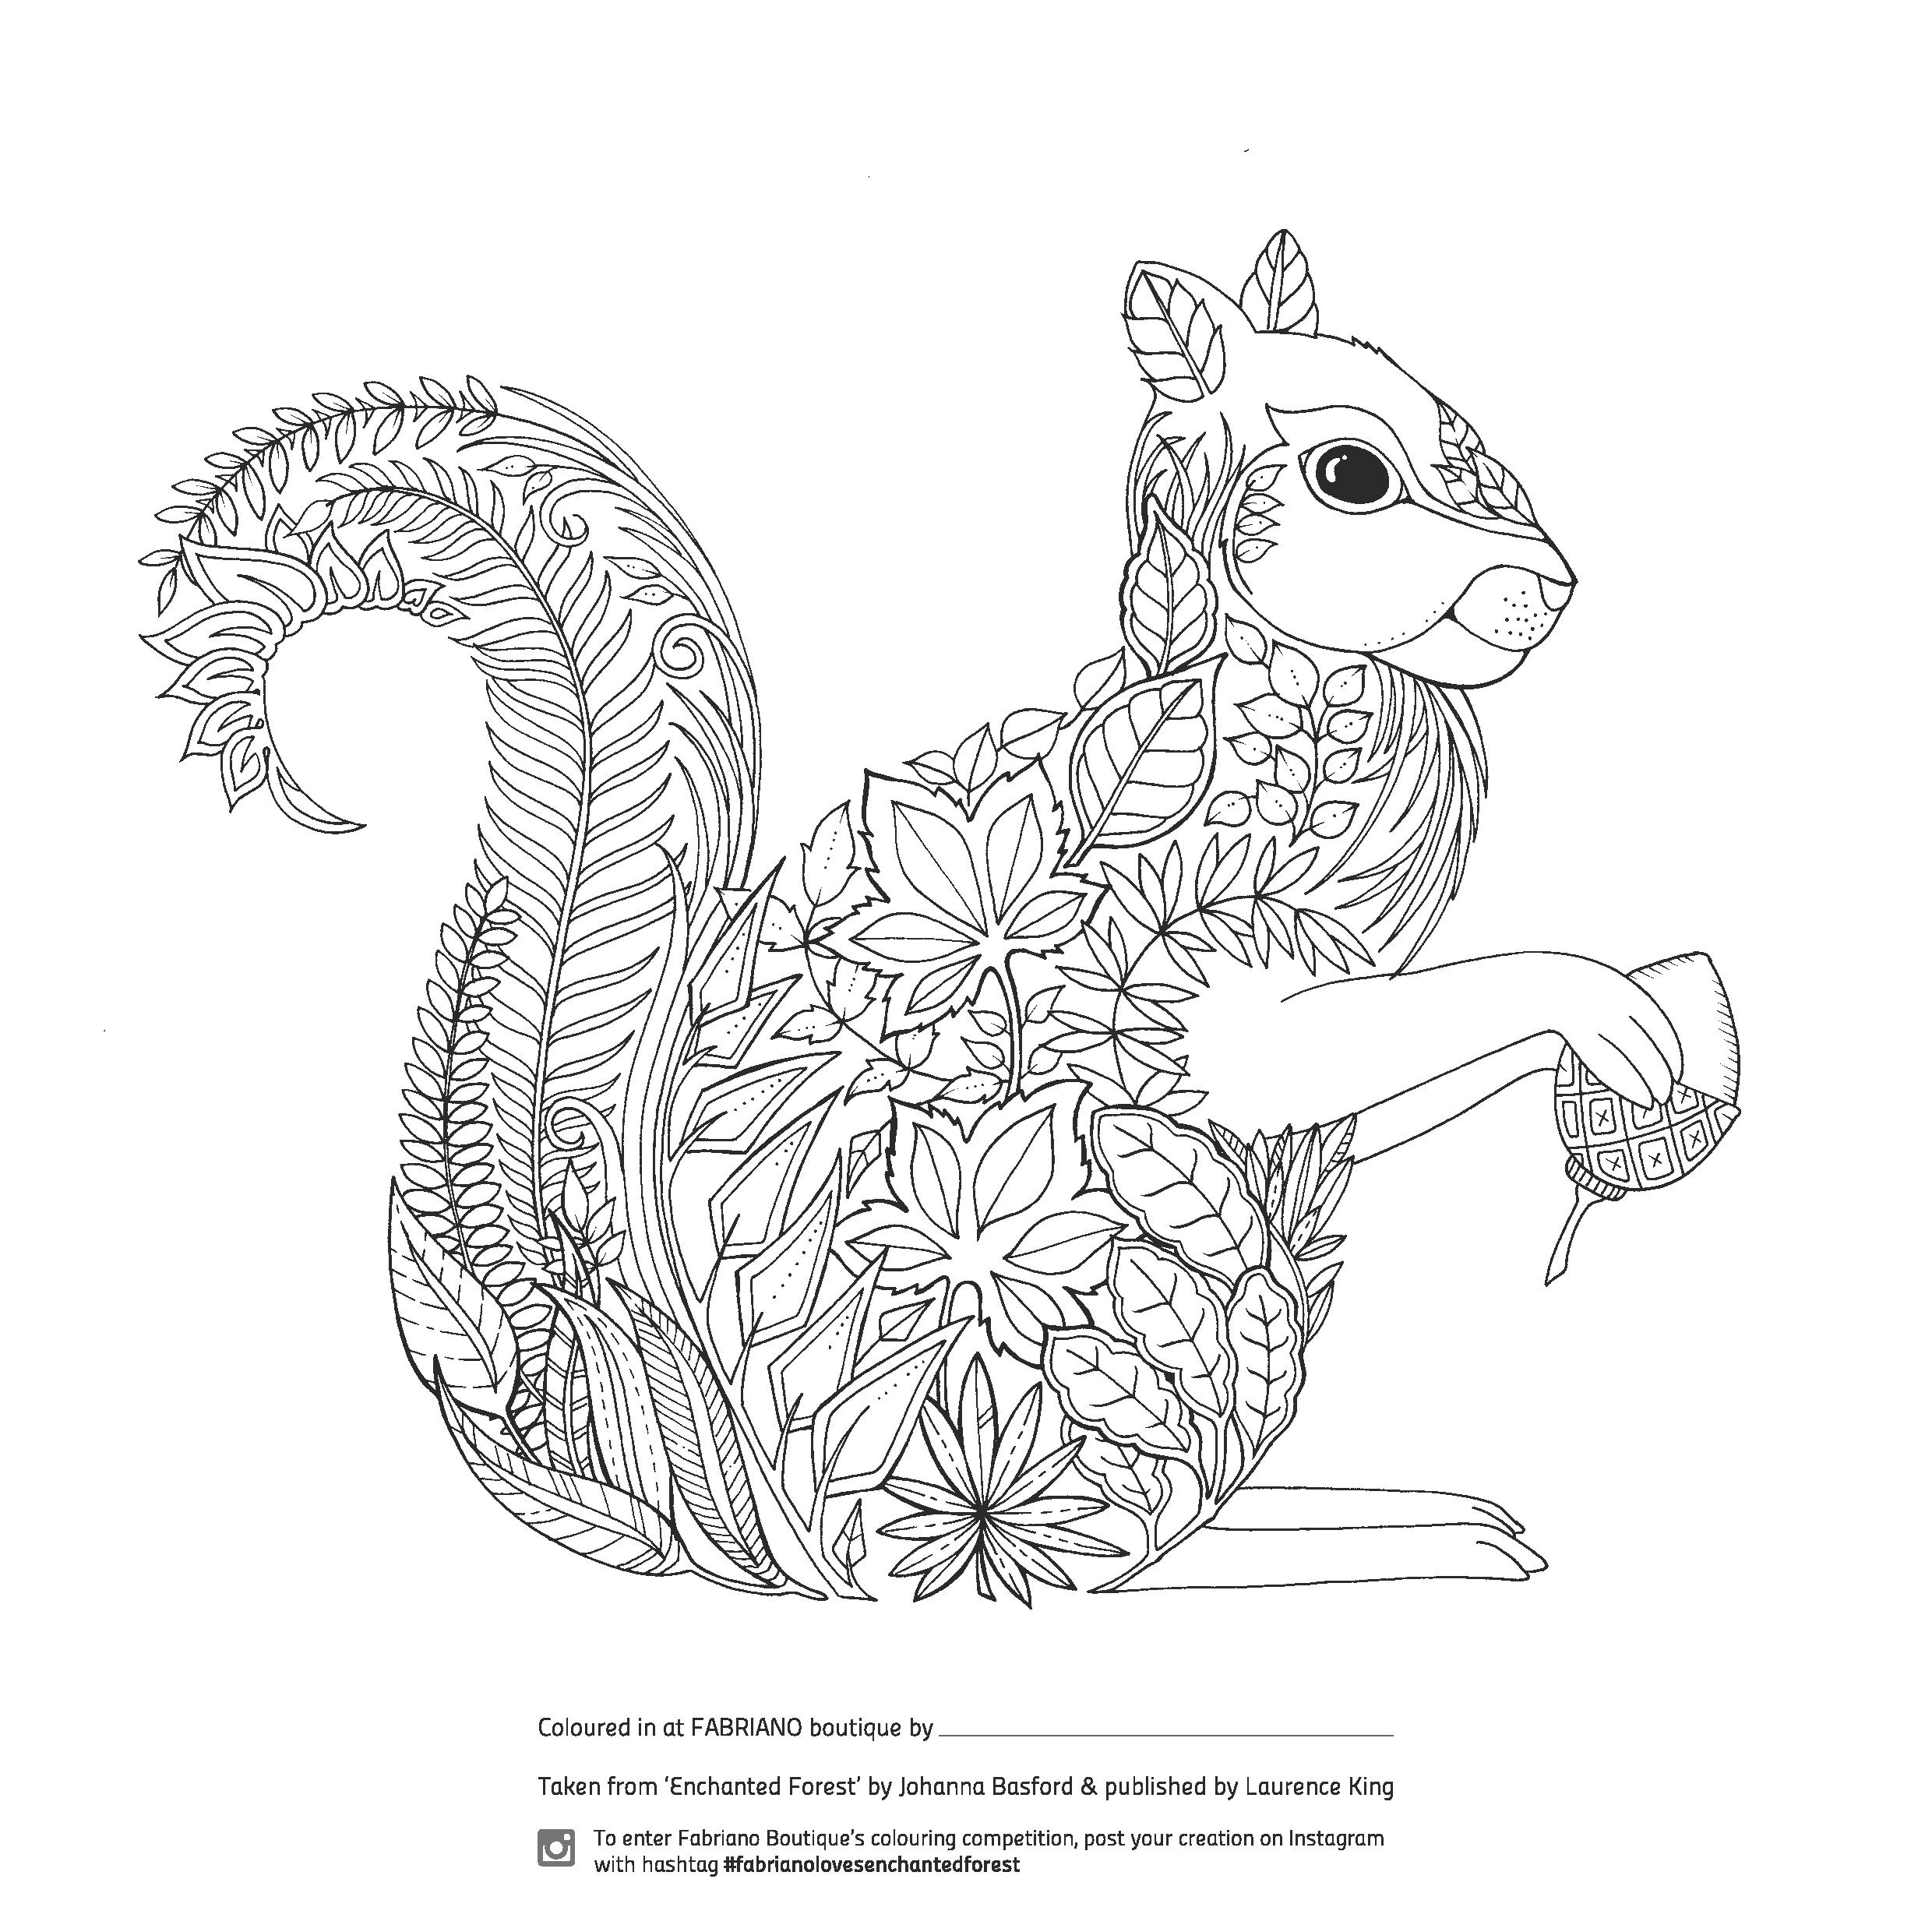 Coloring Pages For Adults: Enchanted Forest Colouring Competition At Fabriano